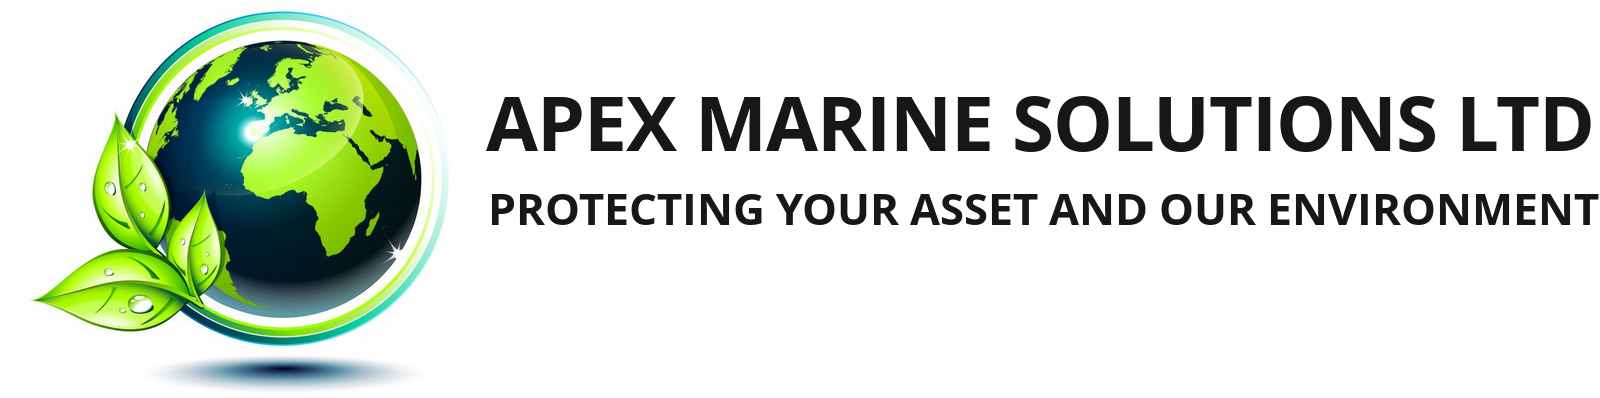 Apex Marine Solutions Ltd